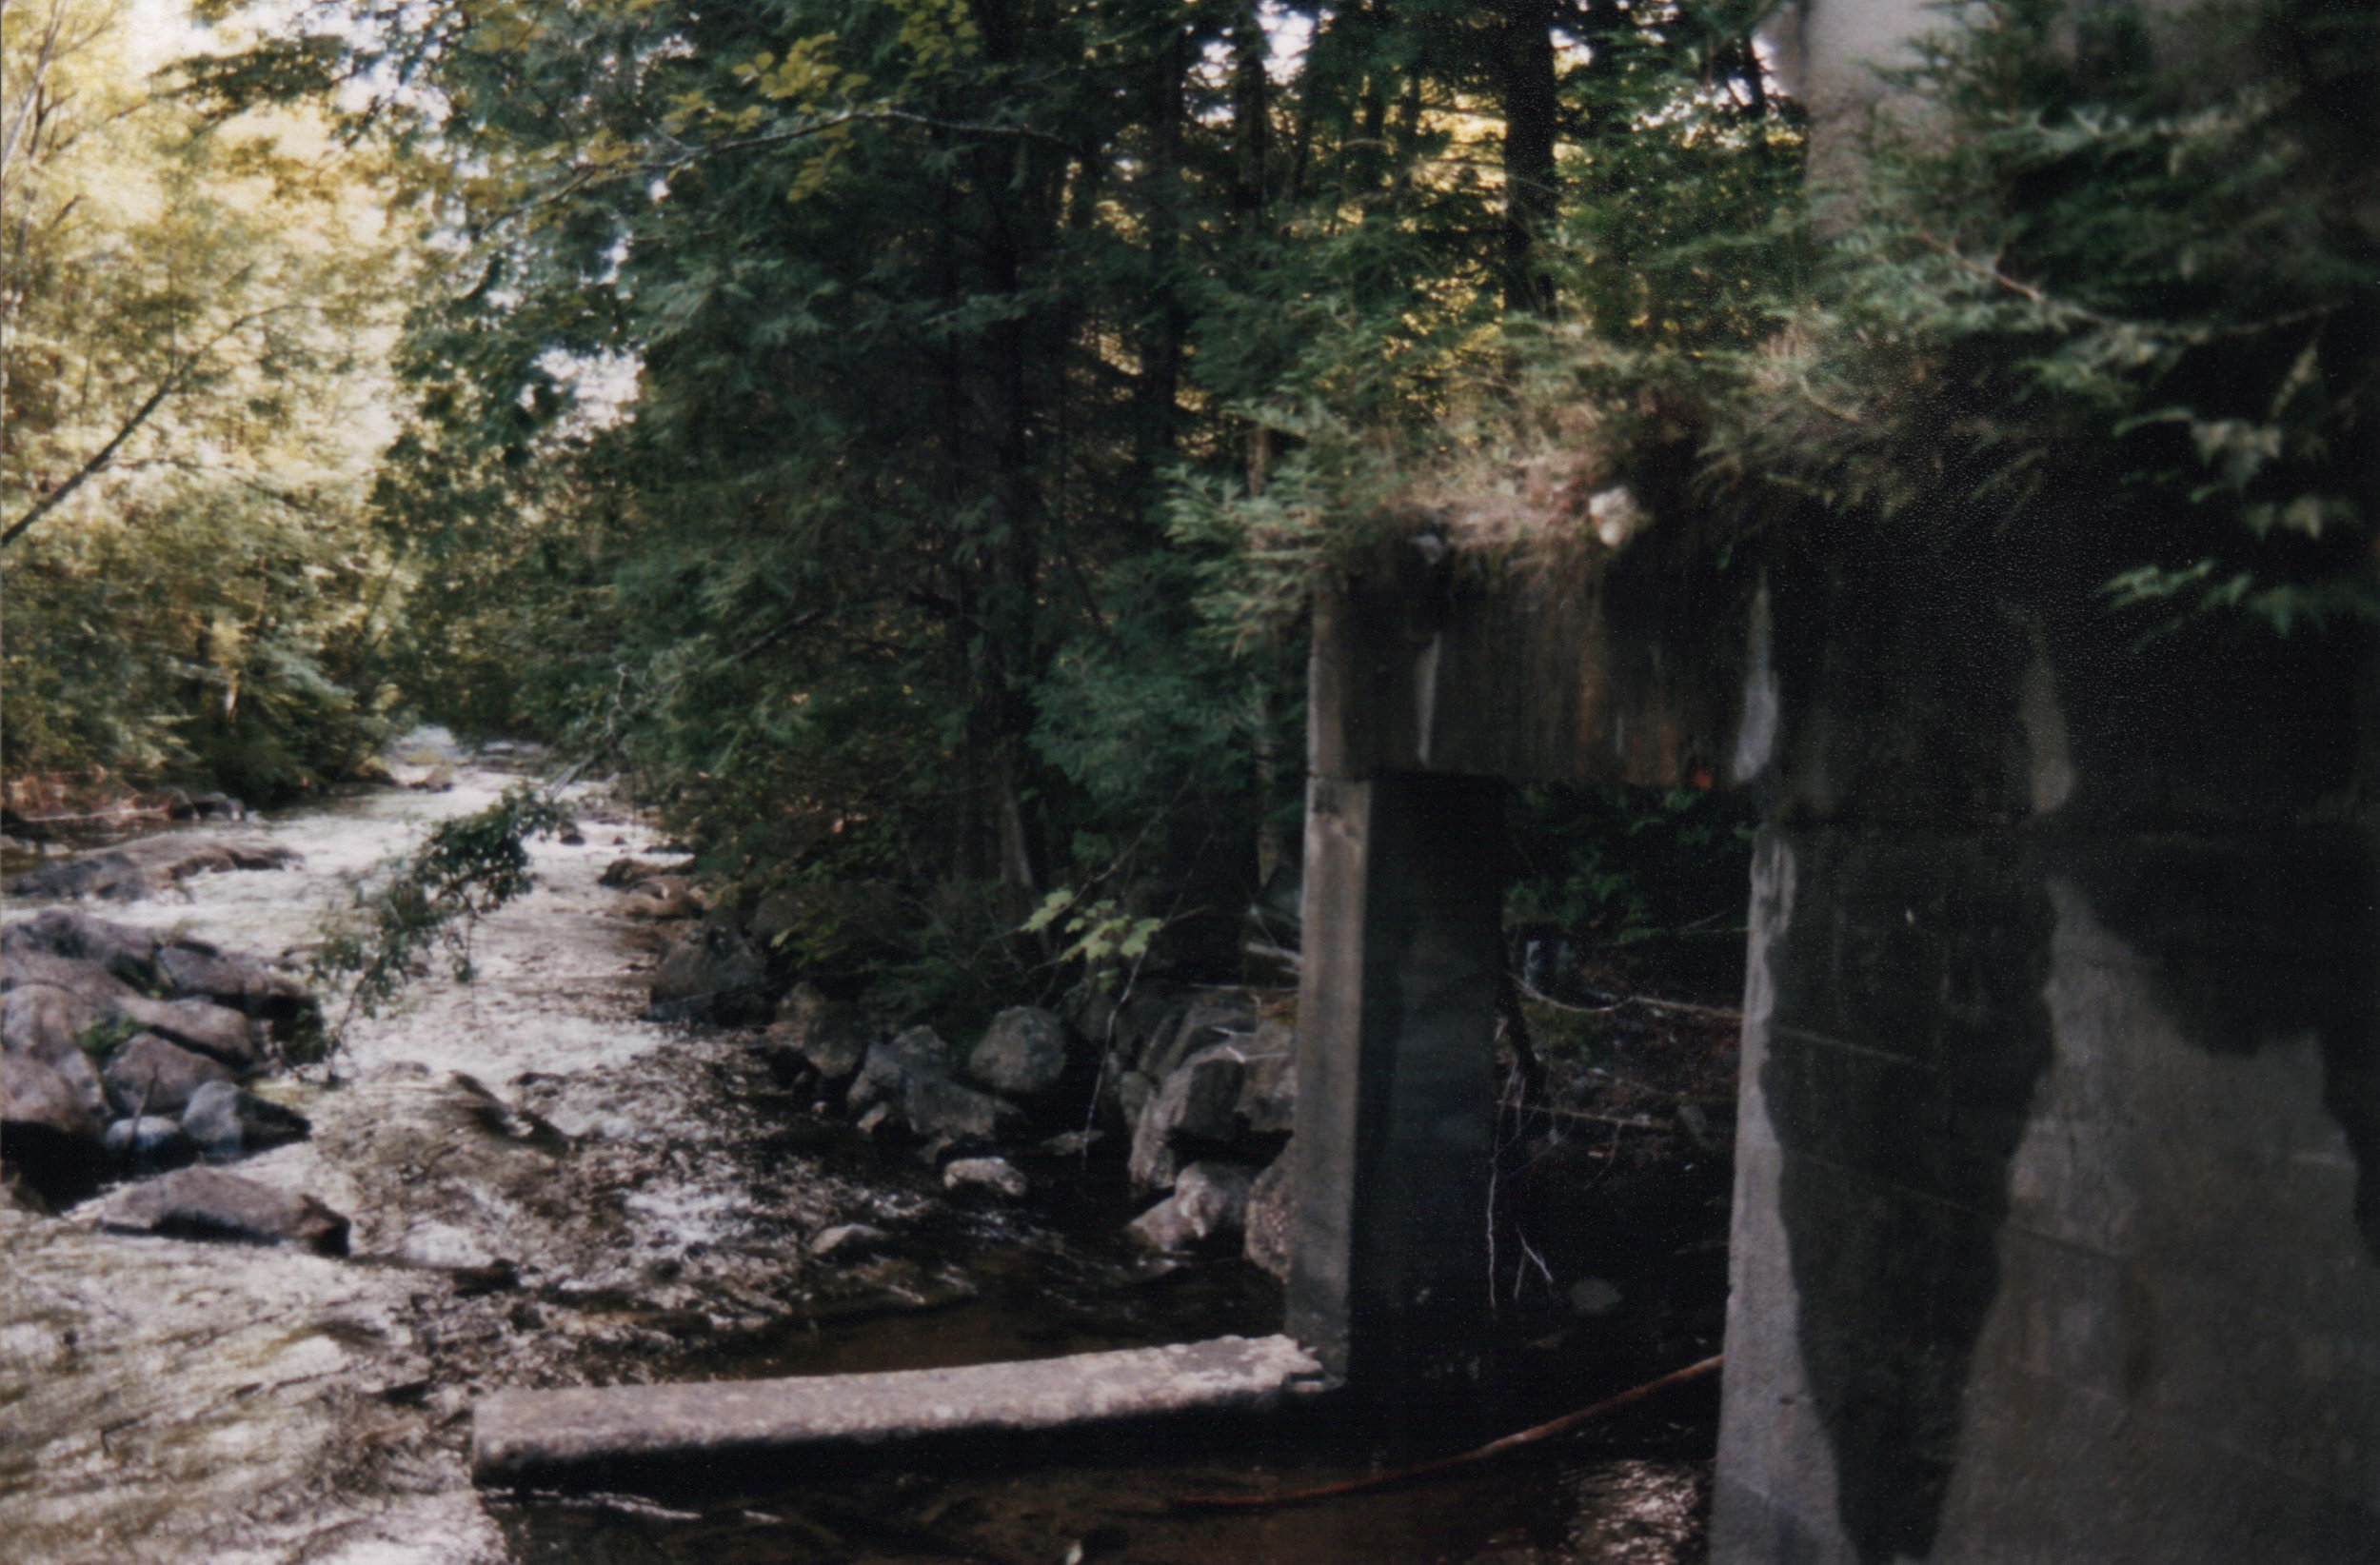 Calamity –   The stream which powered the old waterwheels is called Calamity Brook.